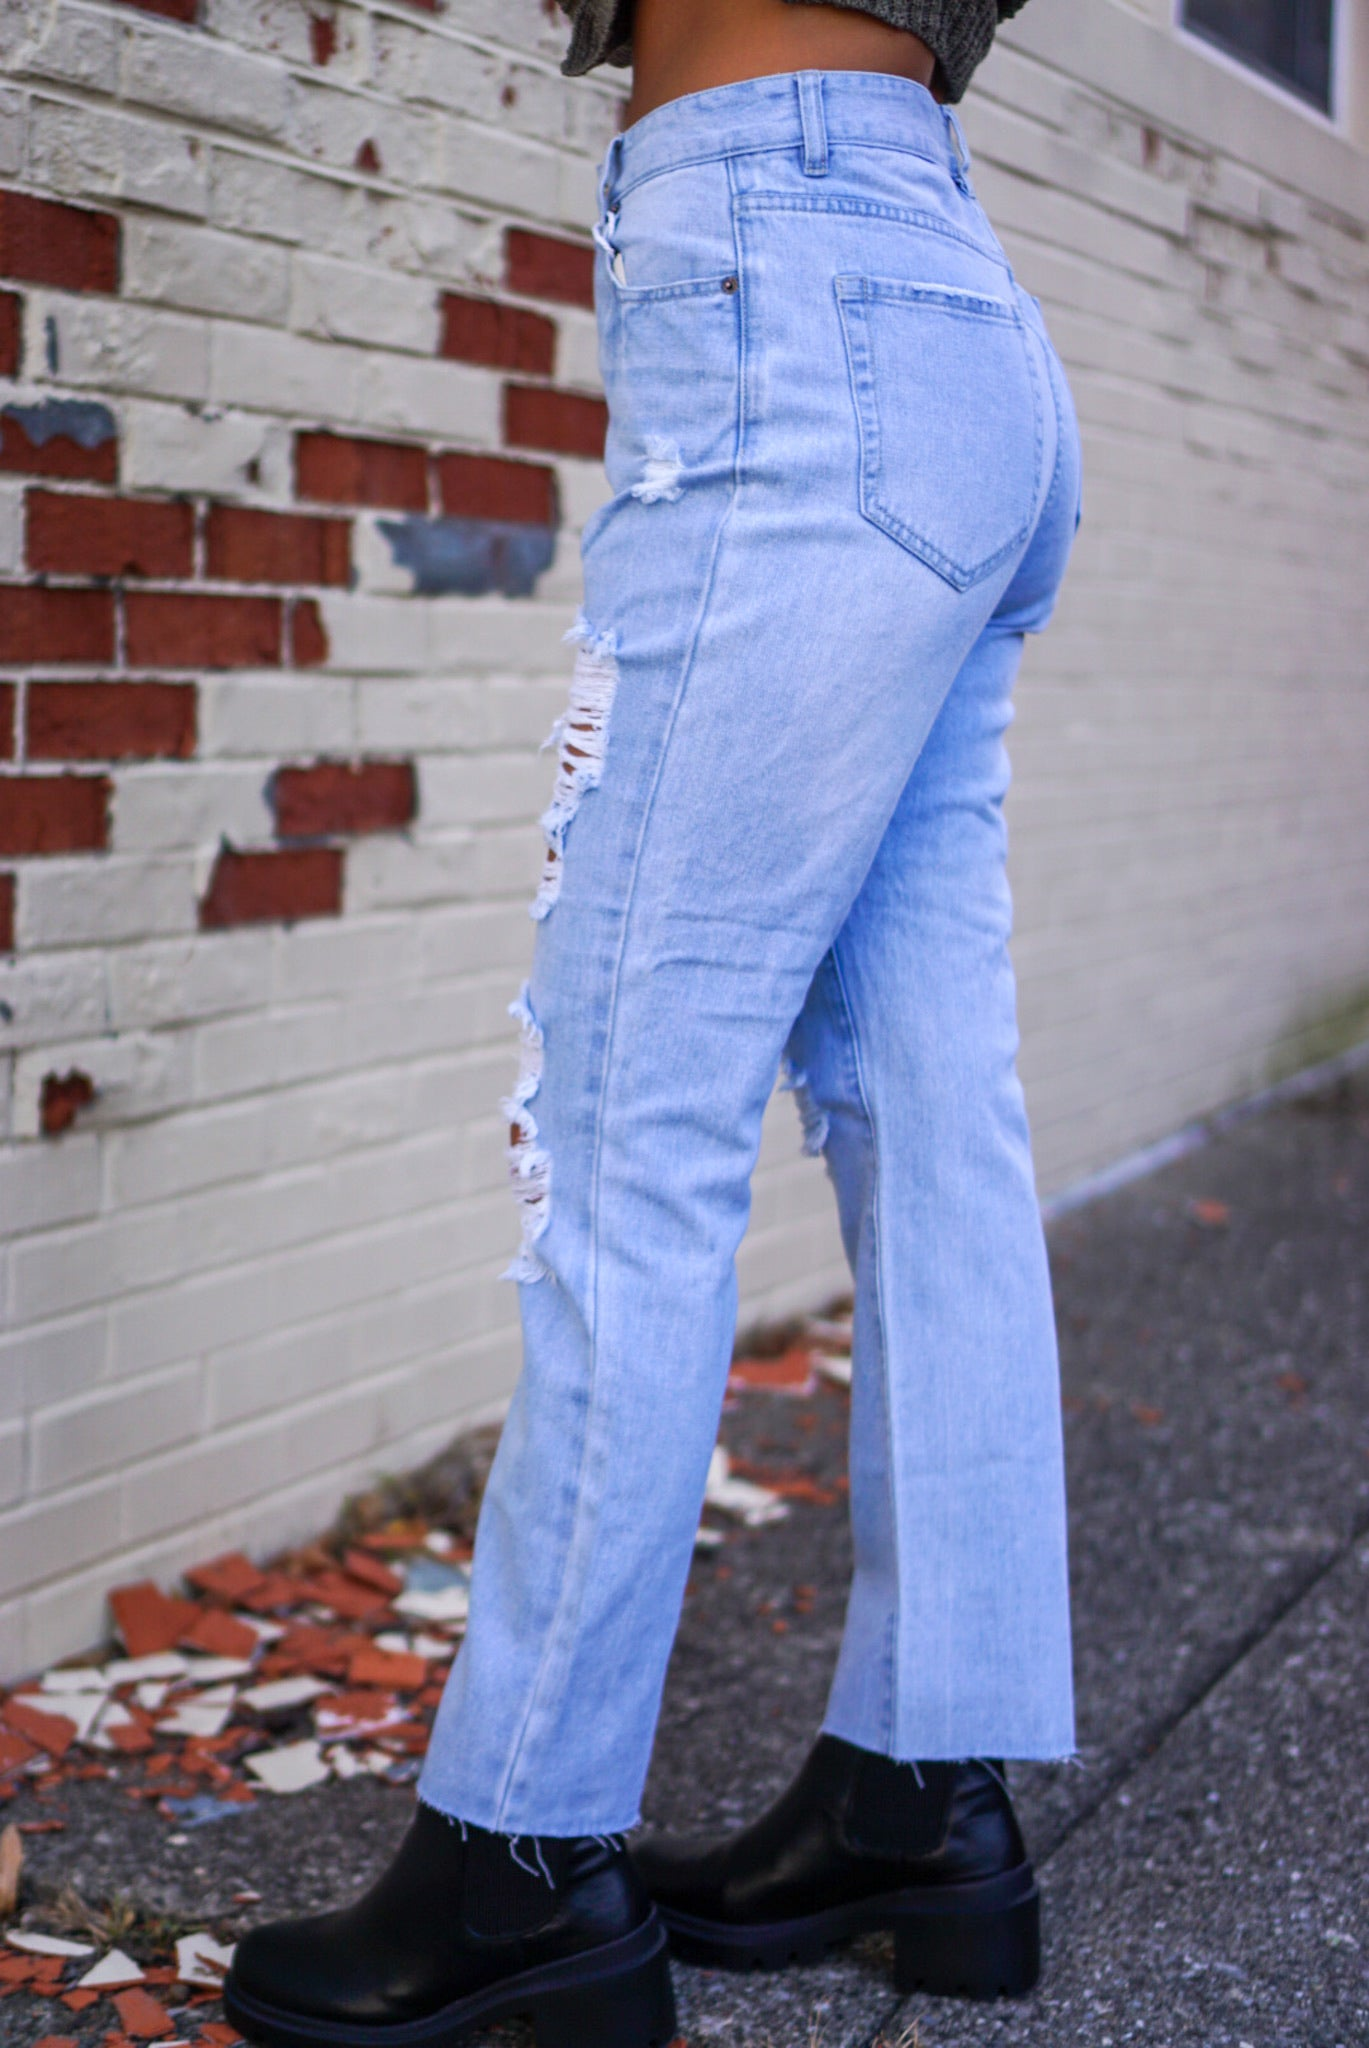 Head Turner Denim Jeans